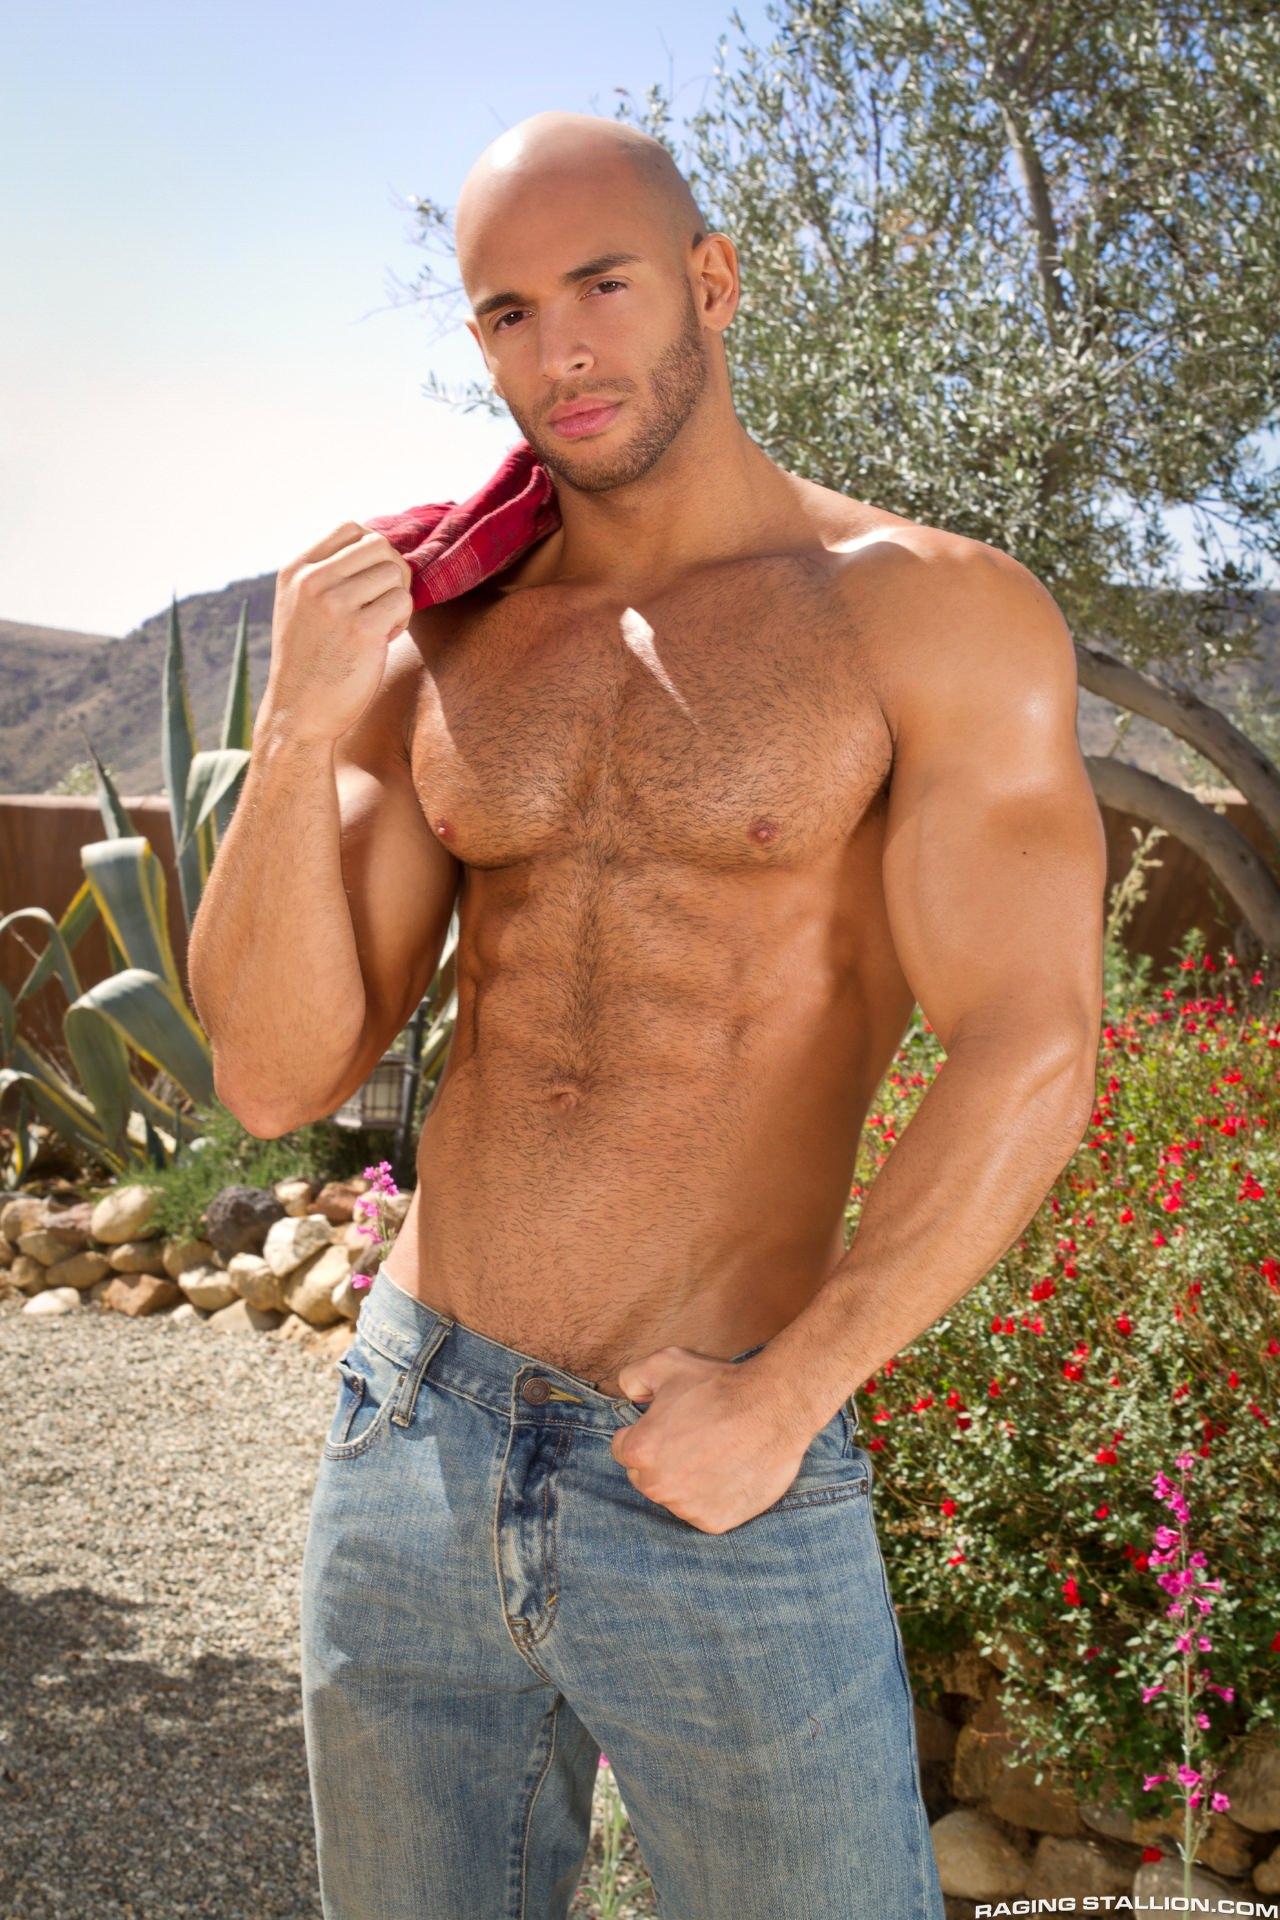 Raging stallion models